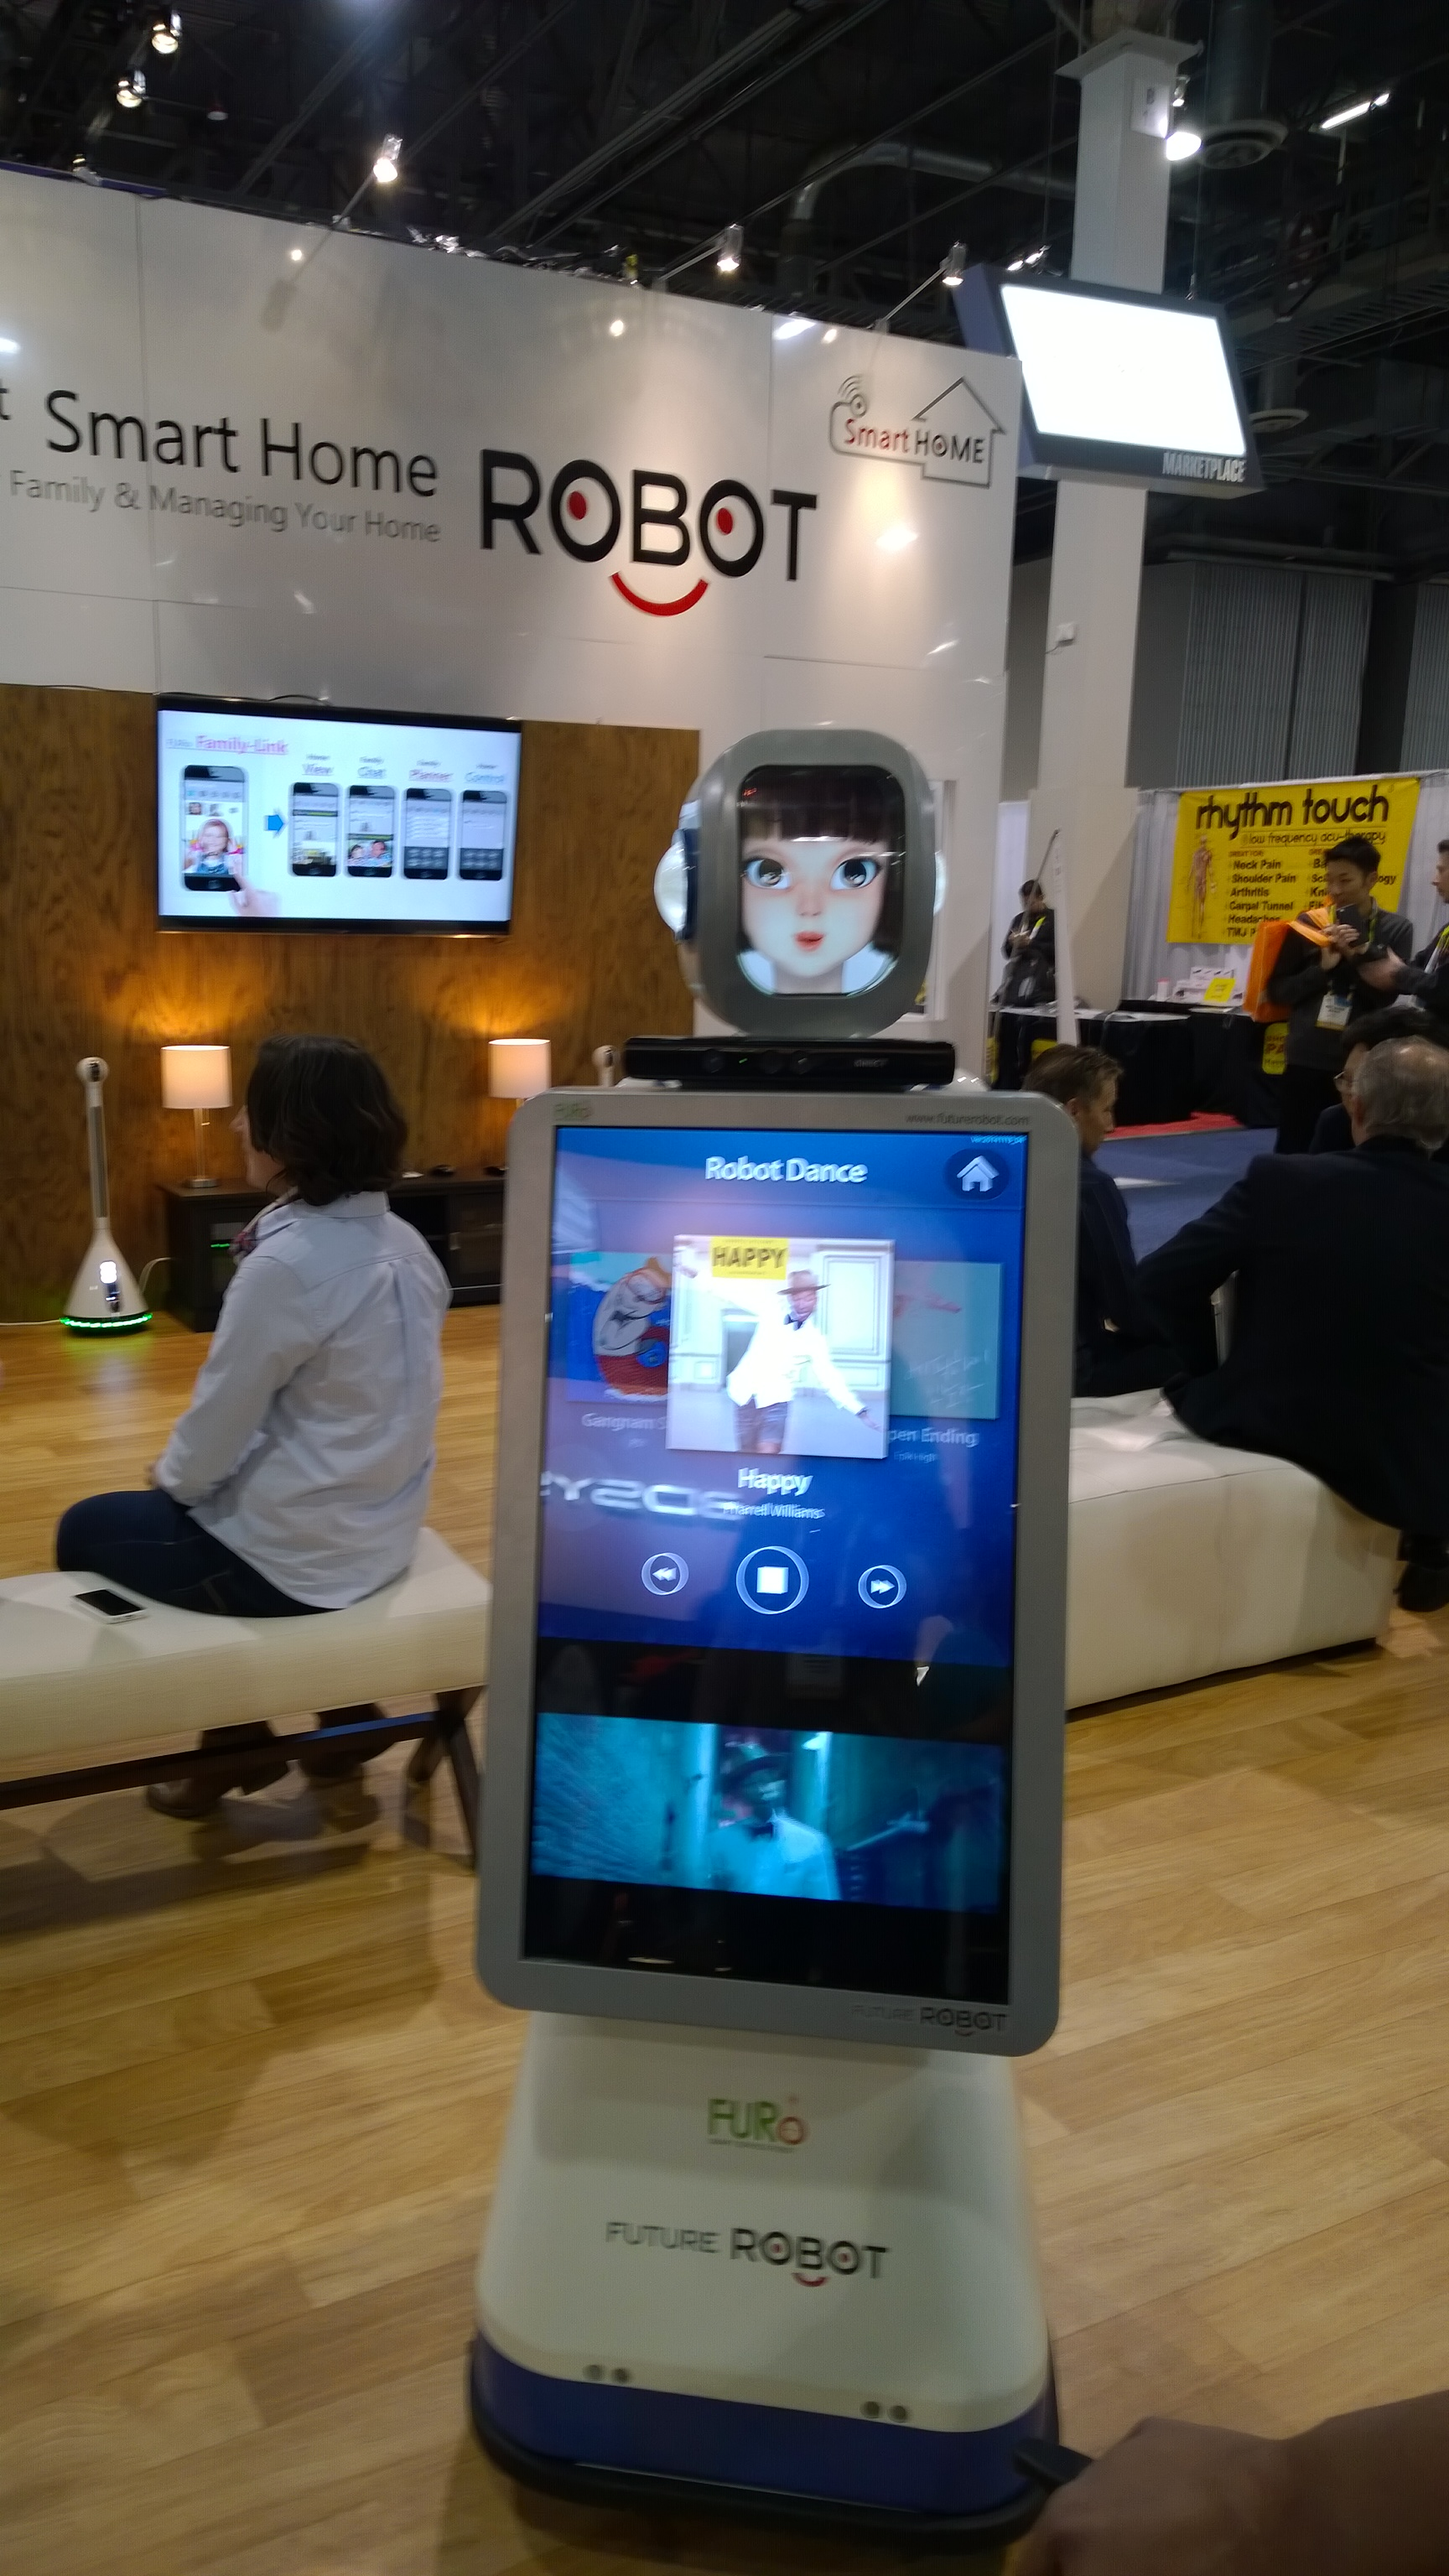 The family robot